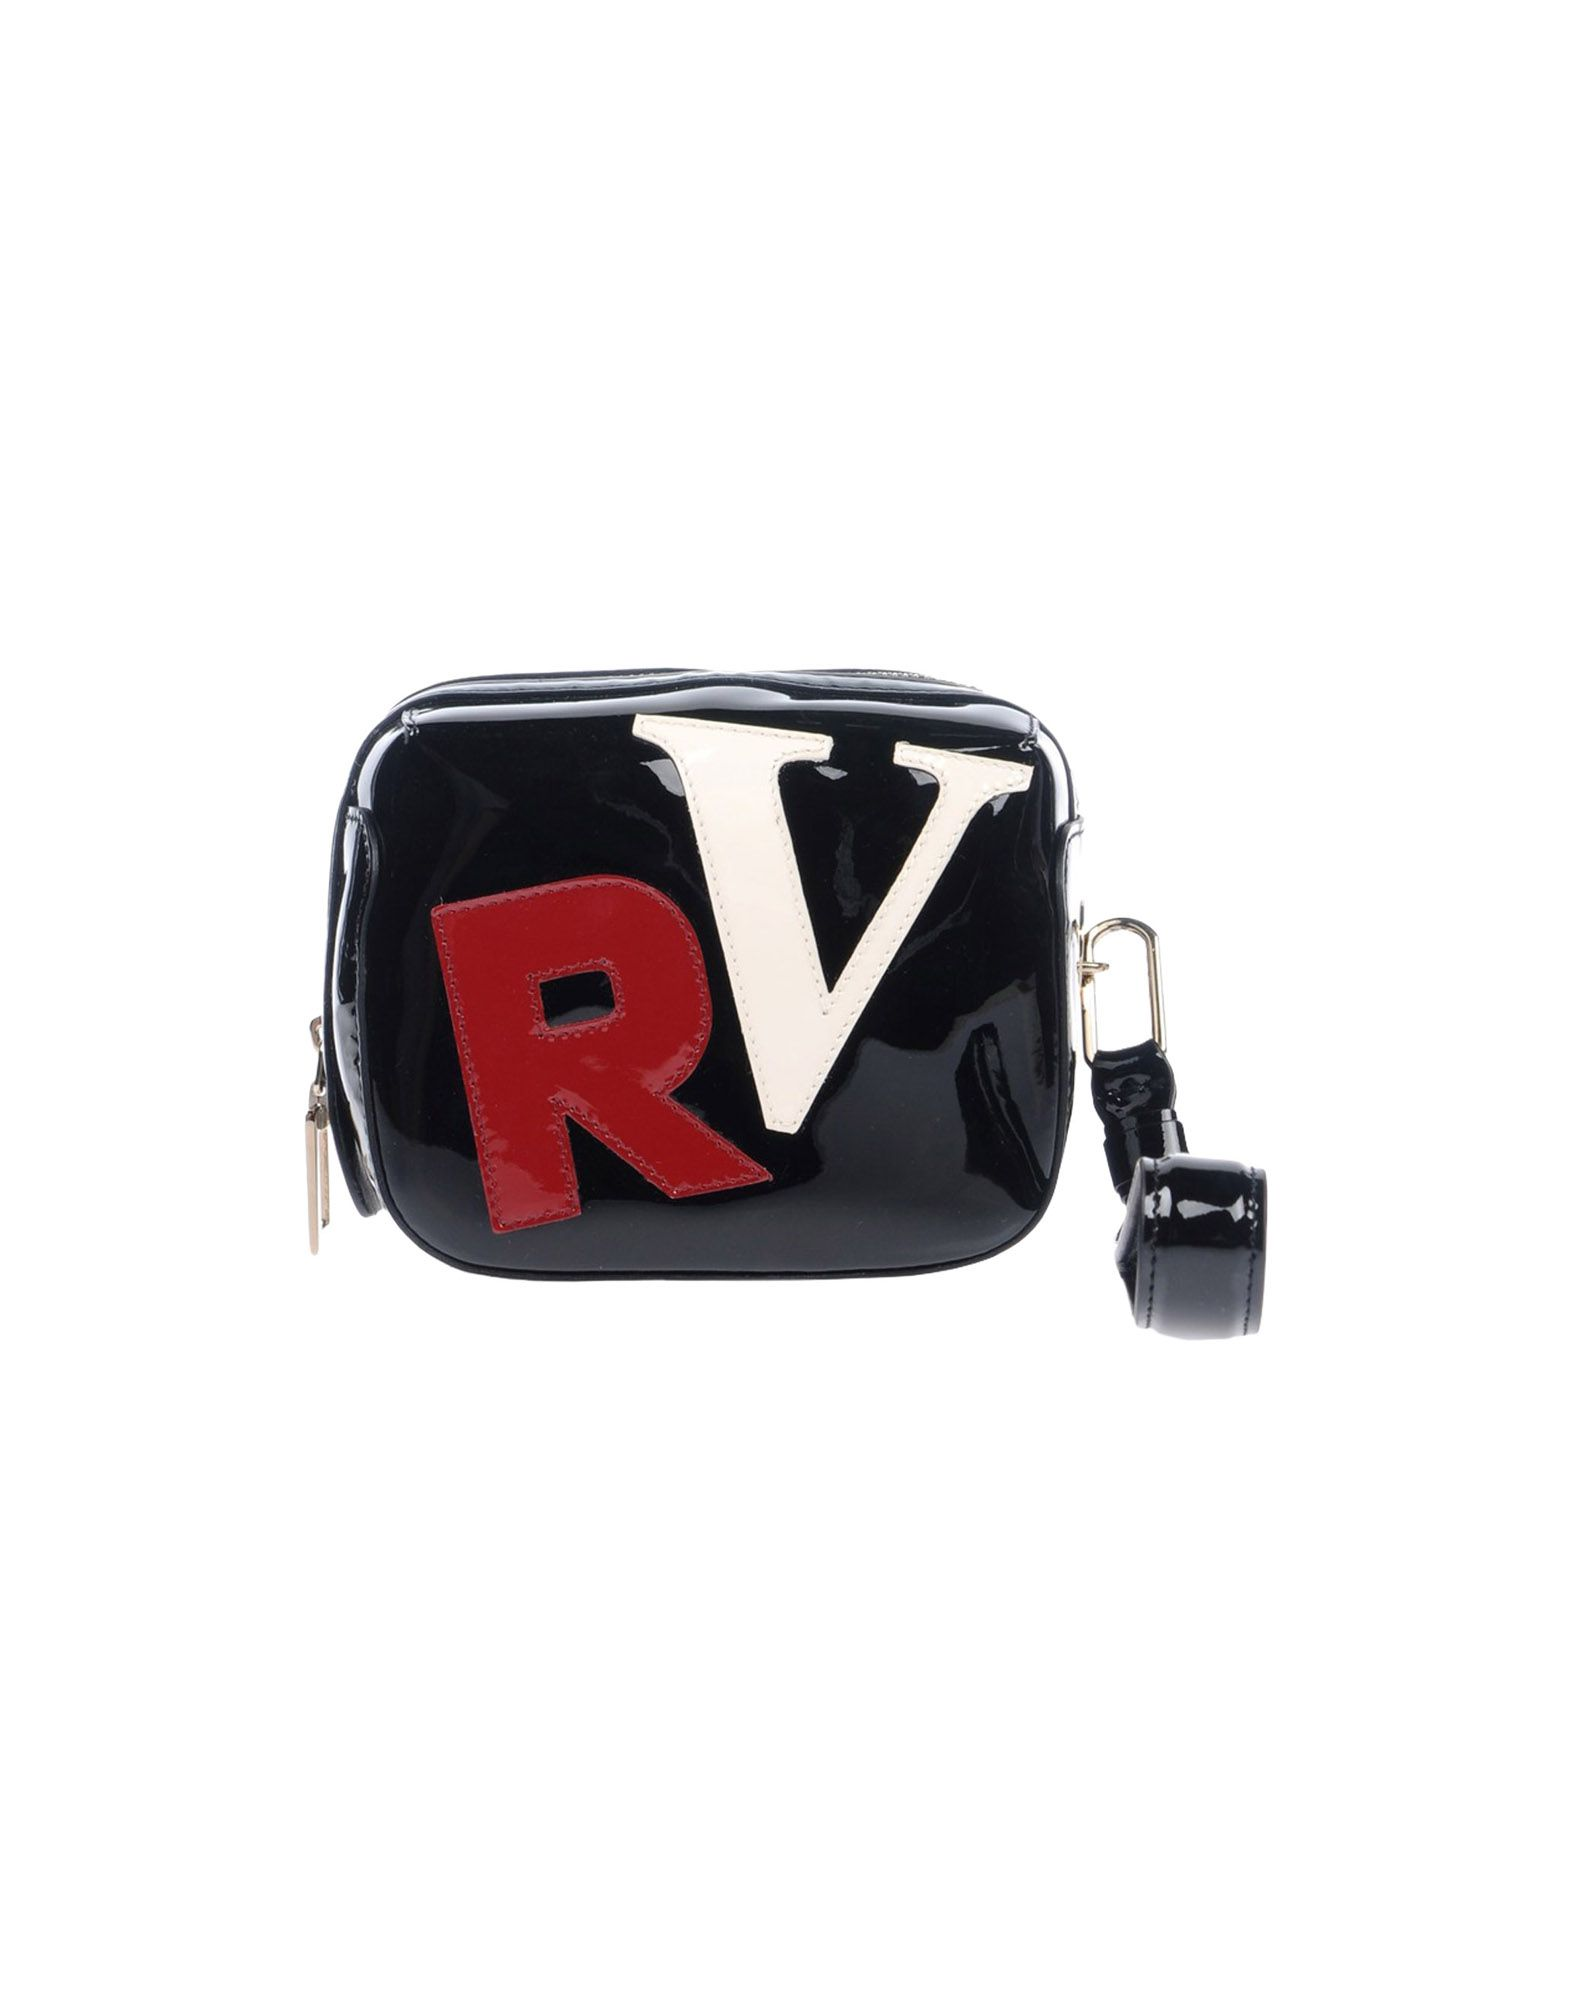 ROGER VIVIER Handbags. small, varnished effect, contrasting applications, solid color, zip, leather lining, contains non-textile parts of animal origin, satchel bags. Soft Leather